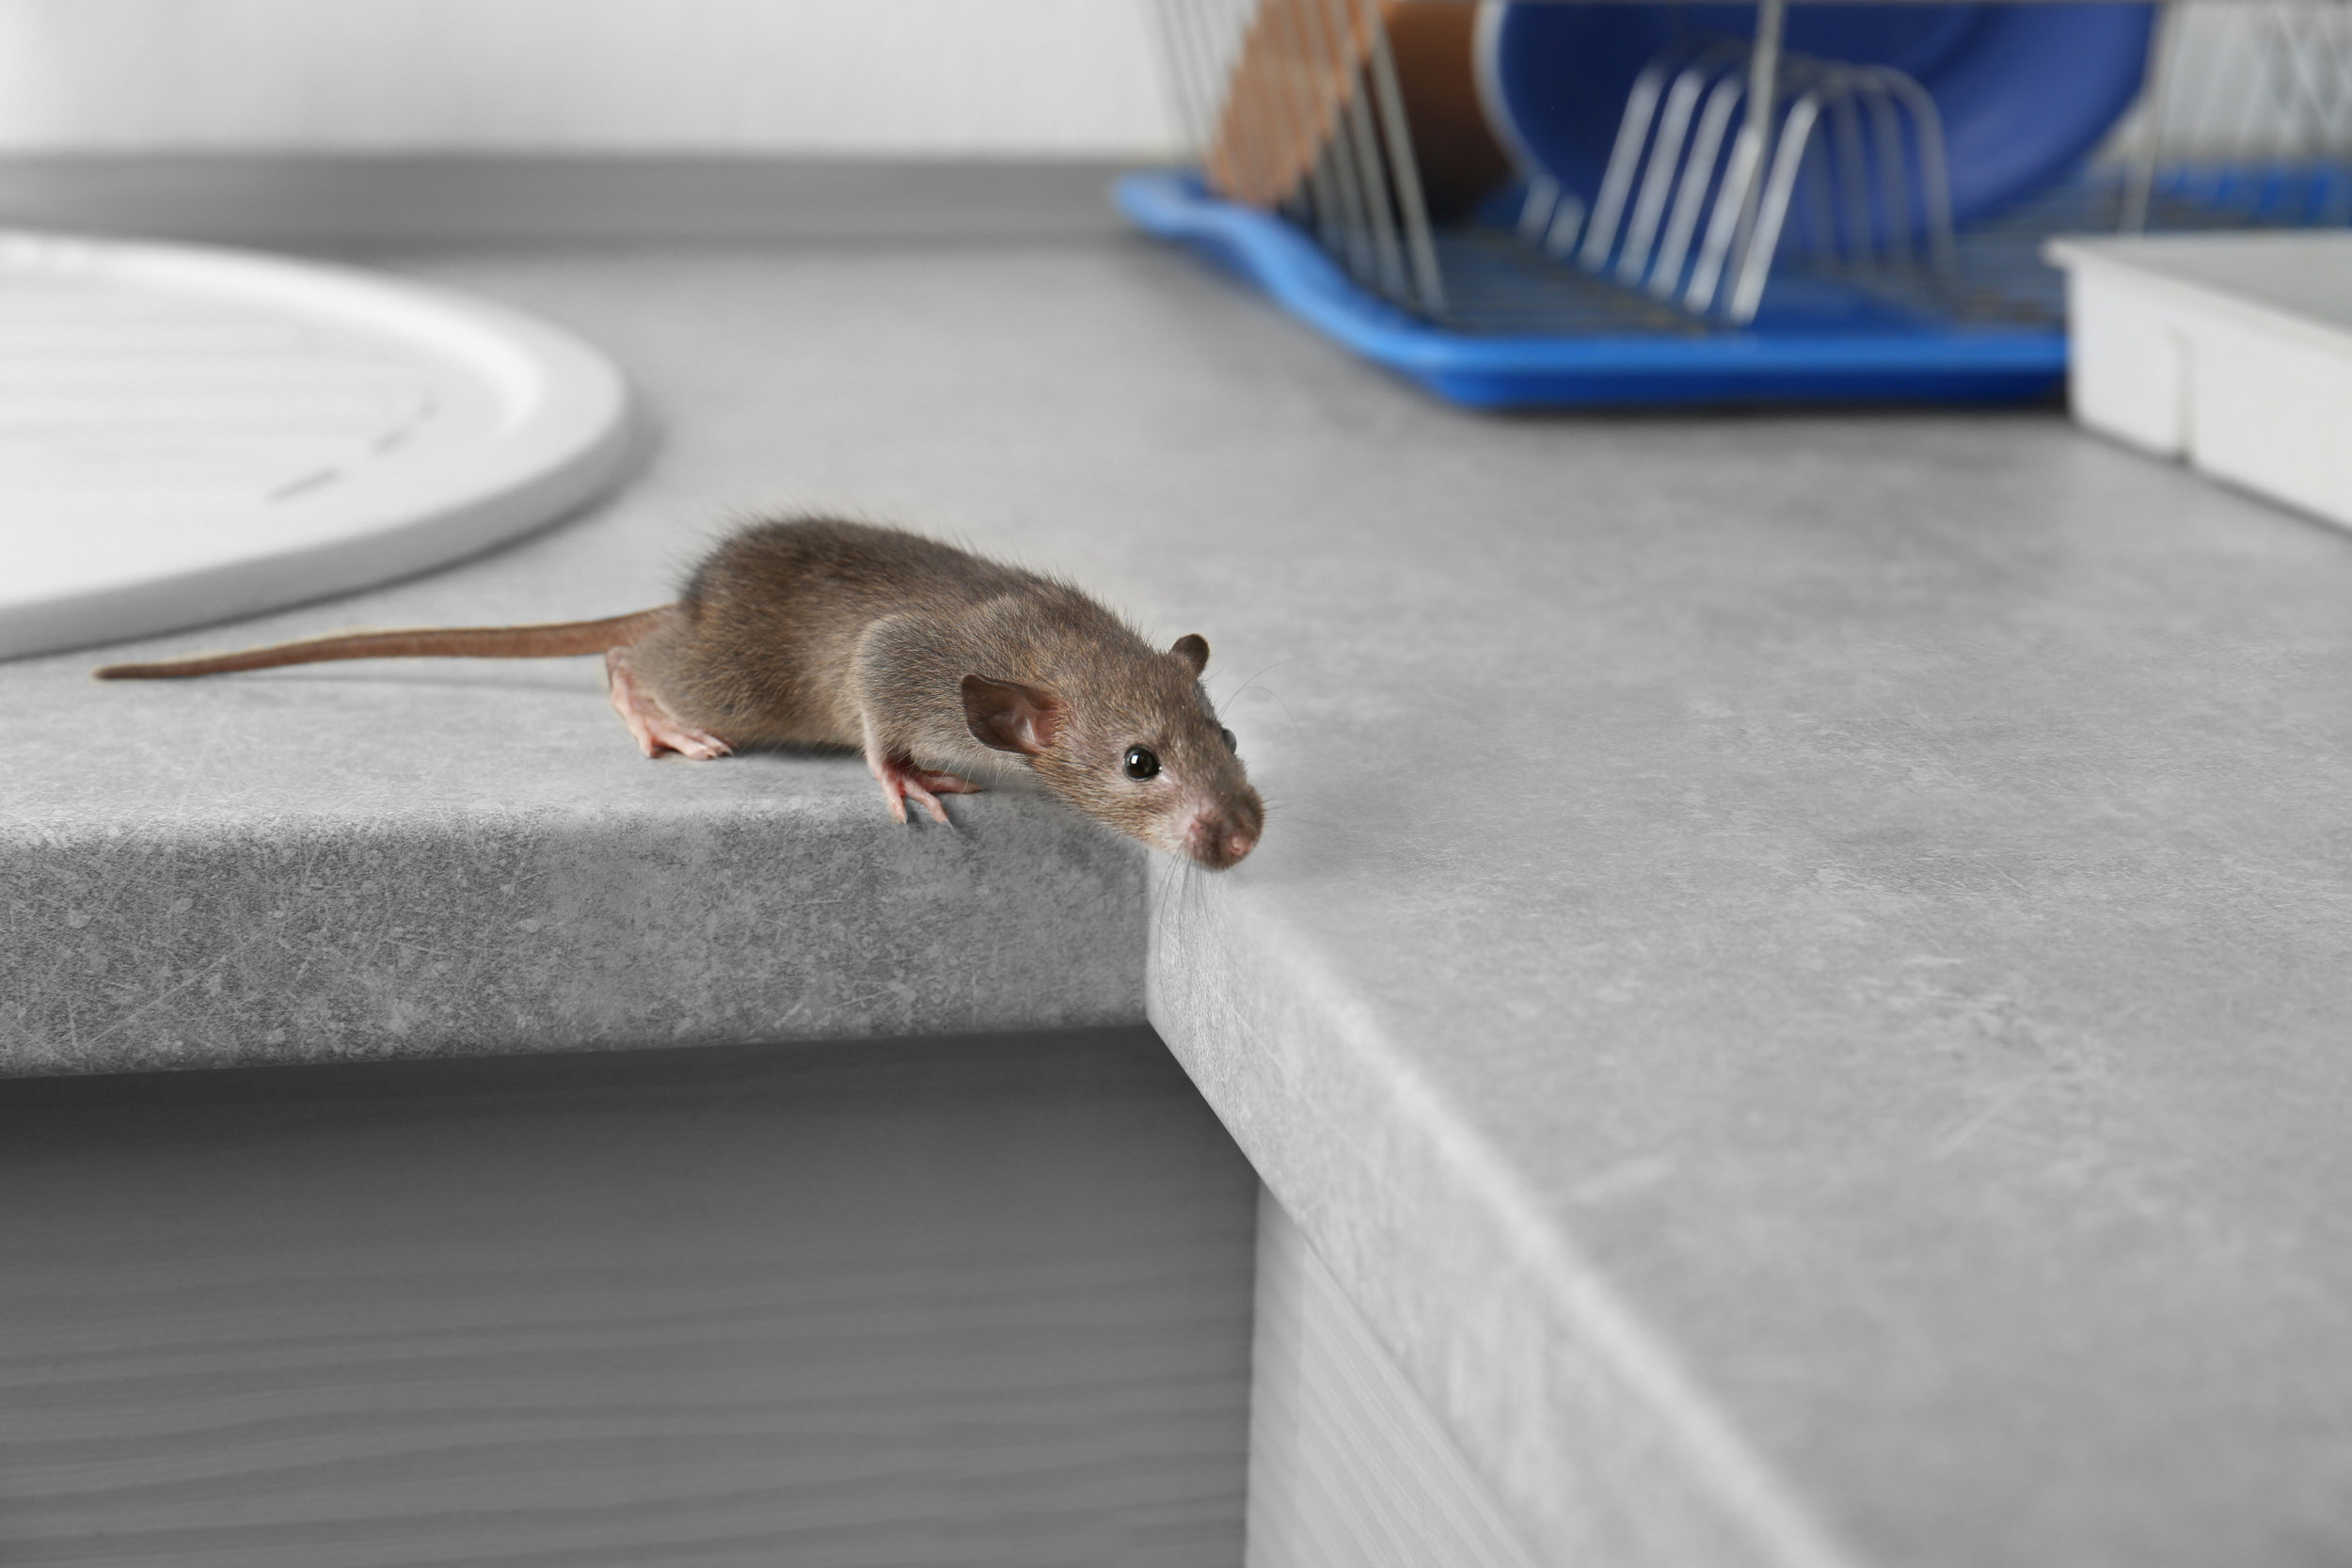 Hire an Exterminator to Get Rid of Mice in Your Brooklyn, NY ...